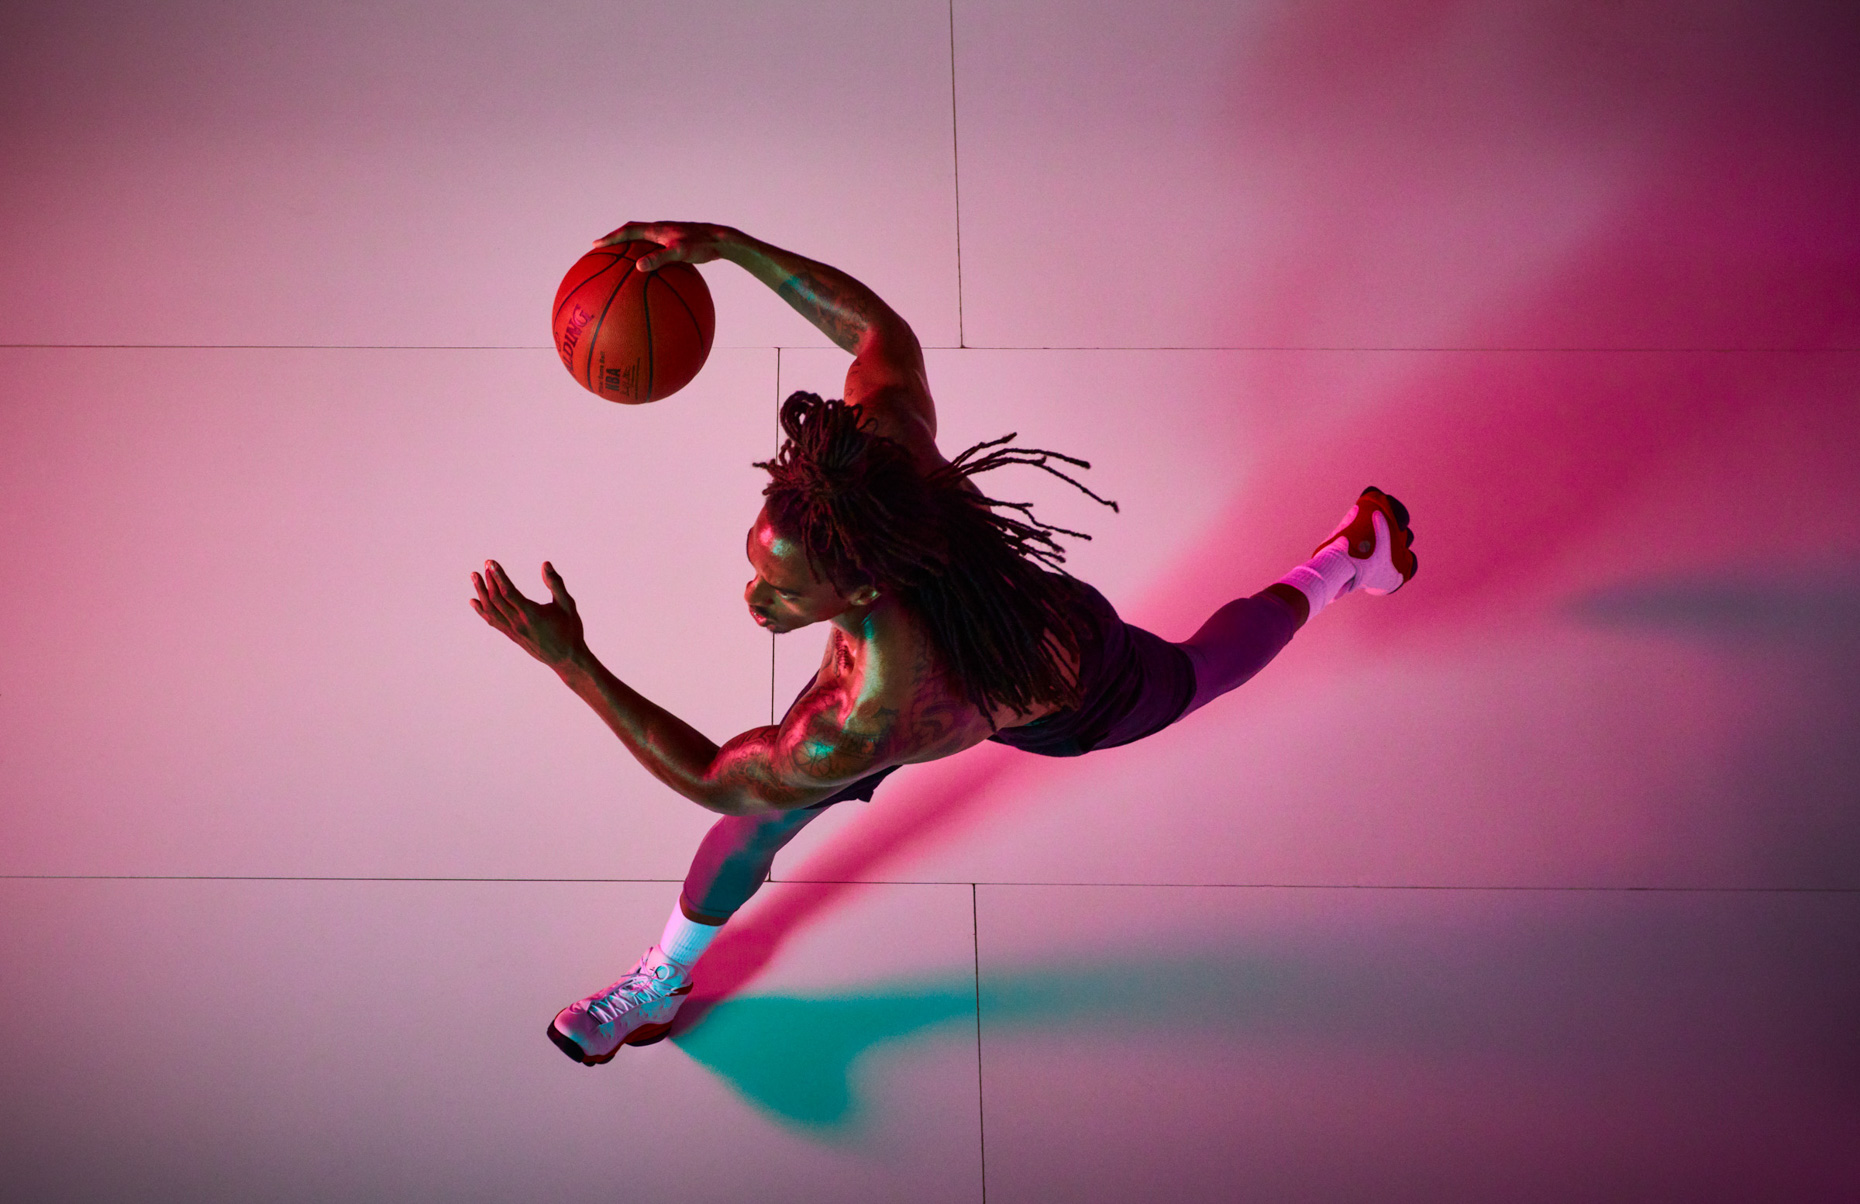 Professional sport athlete Xavier Taylor, of Sports and Lifestle Unlimited, plays basketball